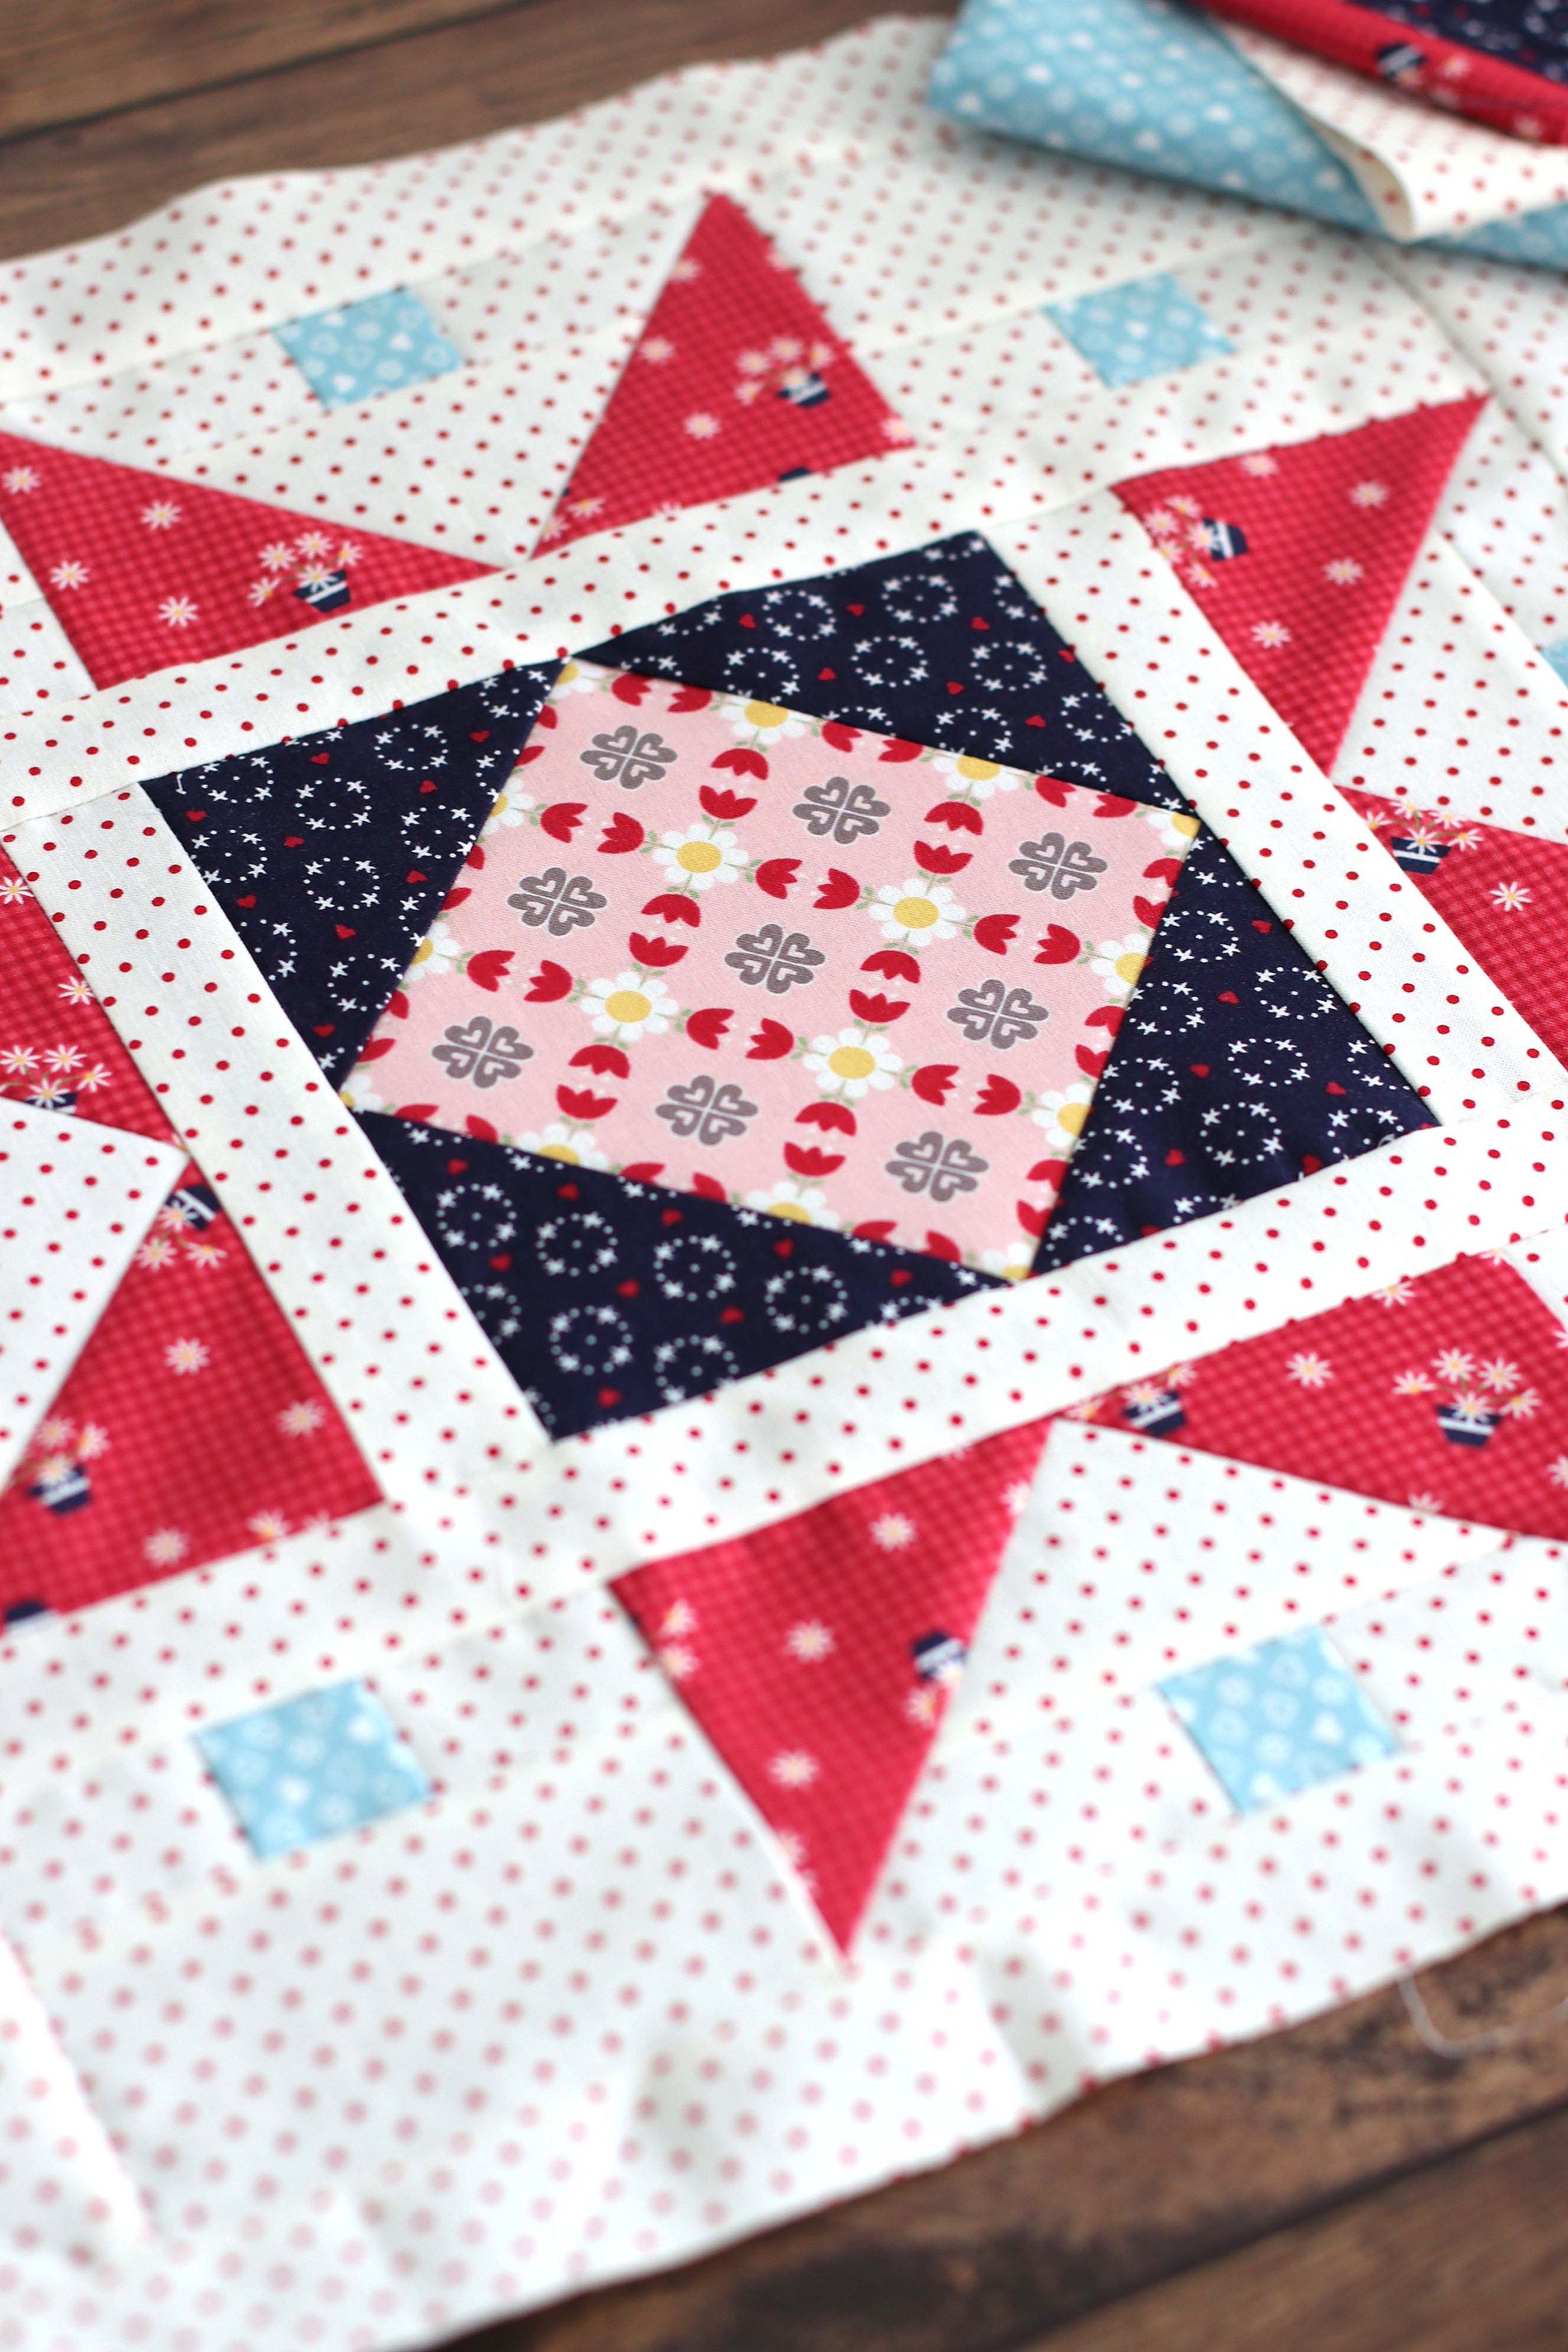 Modern Quilts By Emily Dennis Diary Of A Quilter A Quilt Blog Modern Quilts Quilts Patriotic Quilts